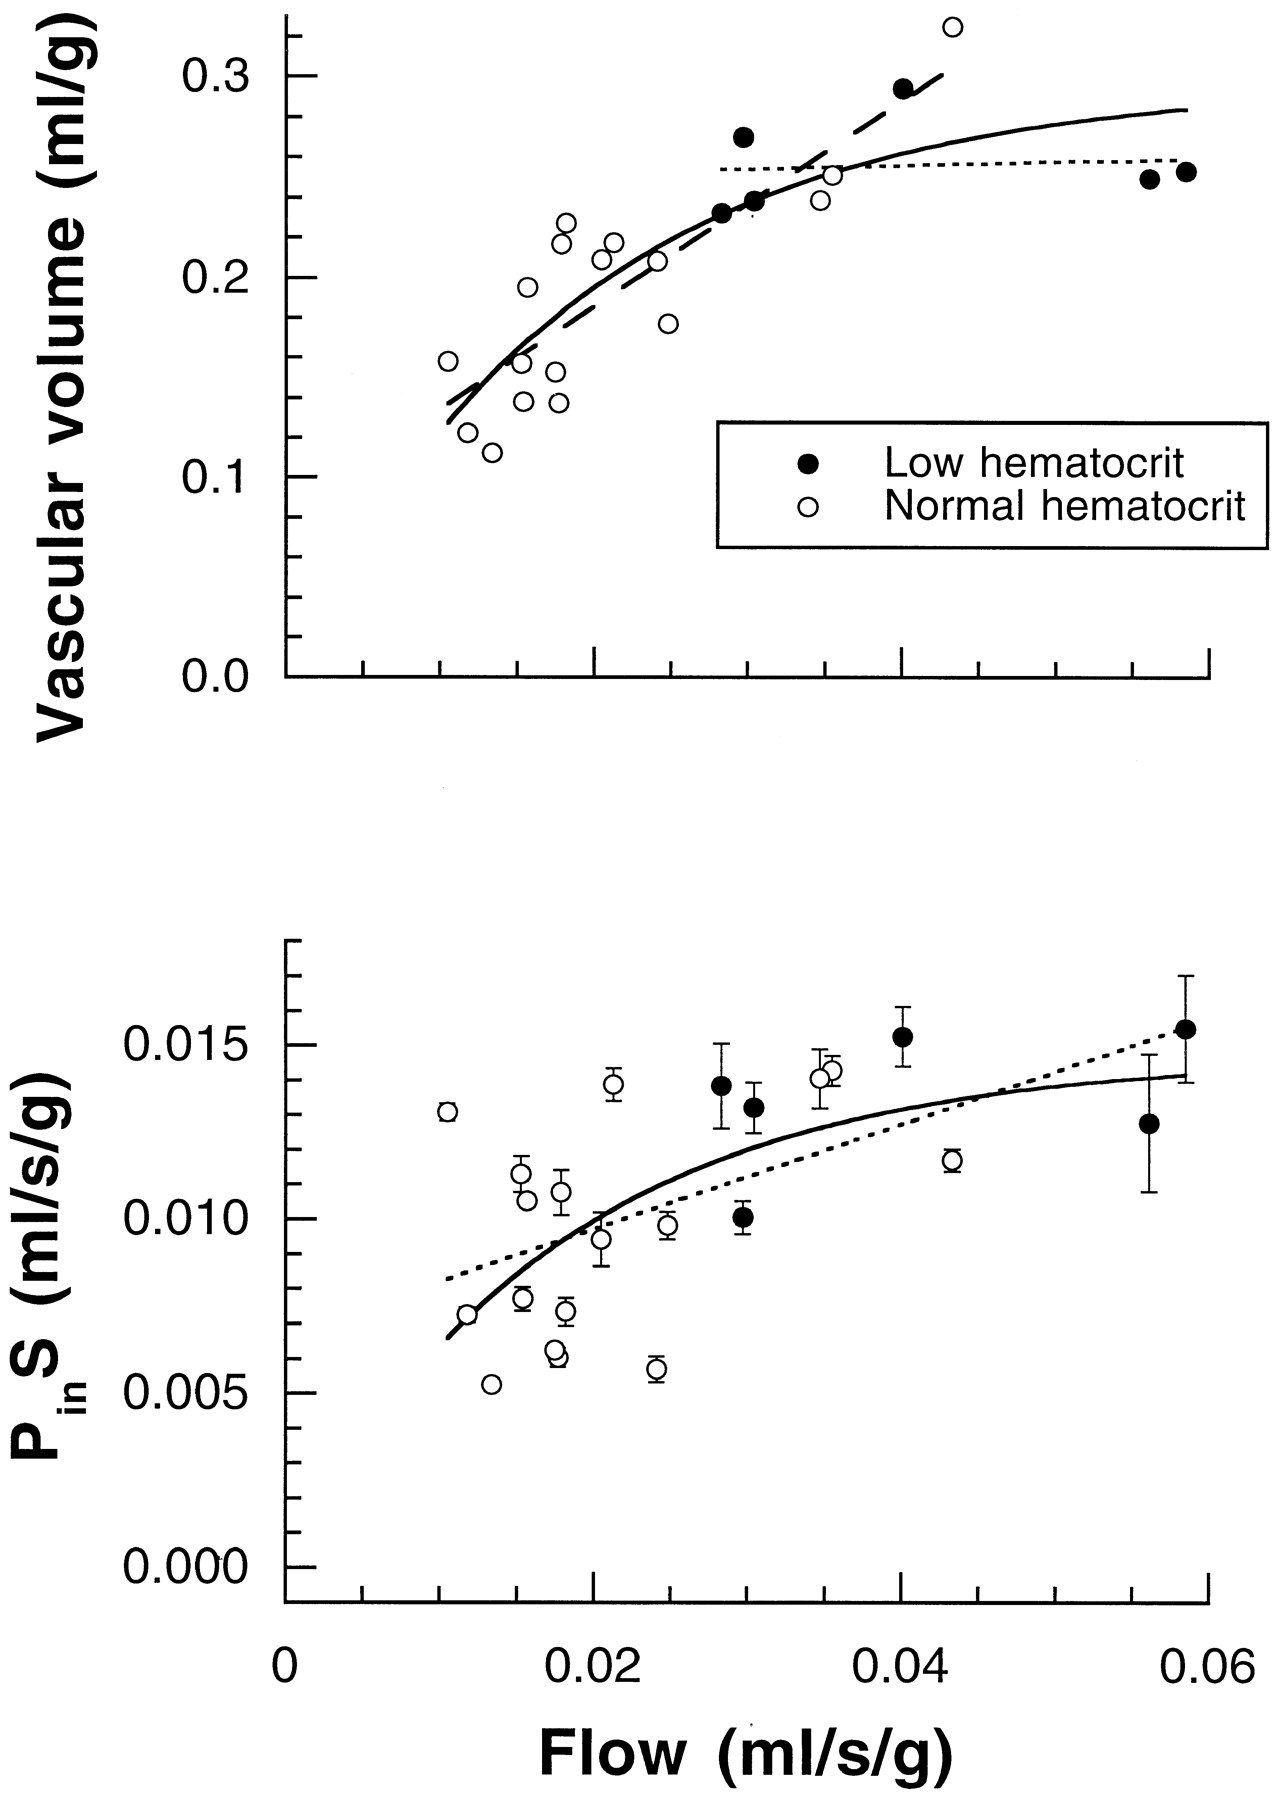 Increased Hepatocyte Permeability Surface Area Product for